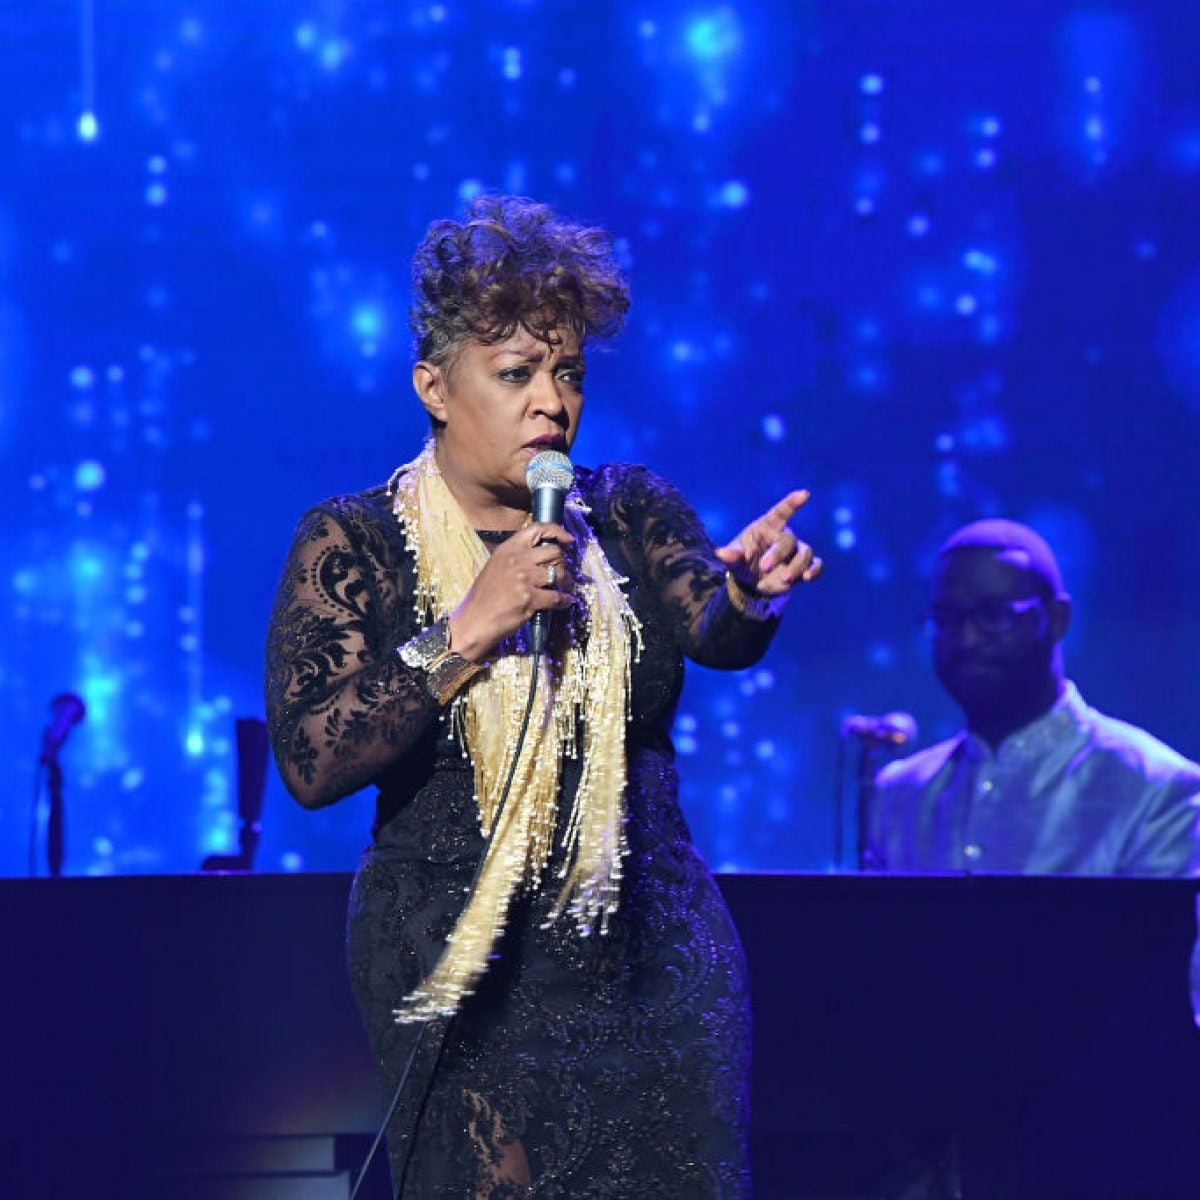 Anita Baker Asks Fans To Stop Streaming Her Music In Efforts to Retrieve Her Masters